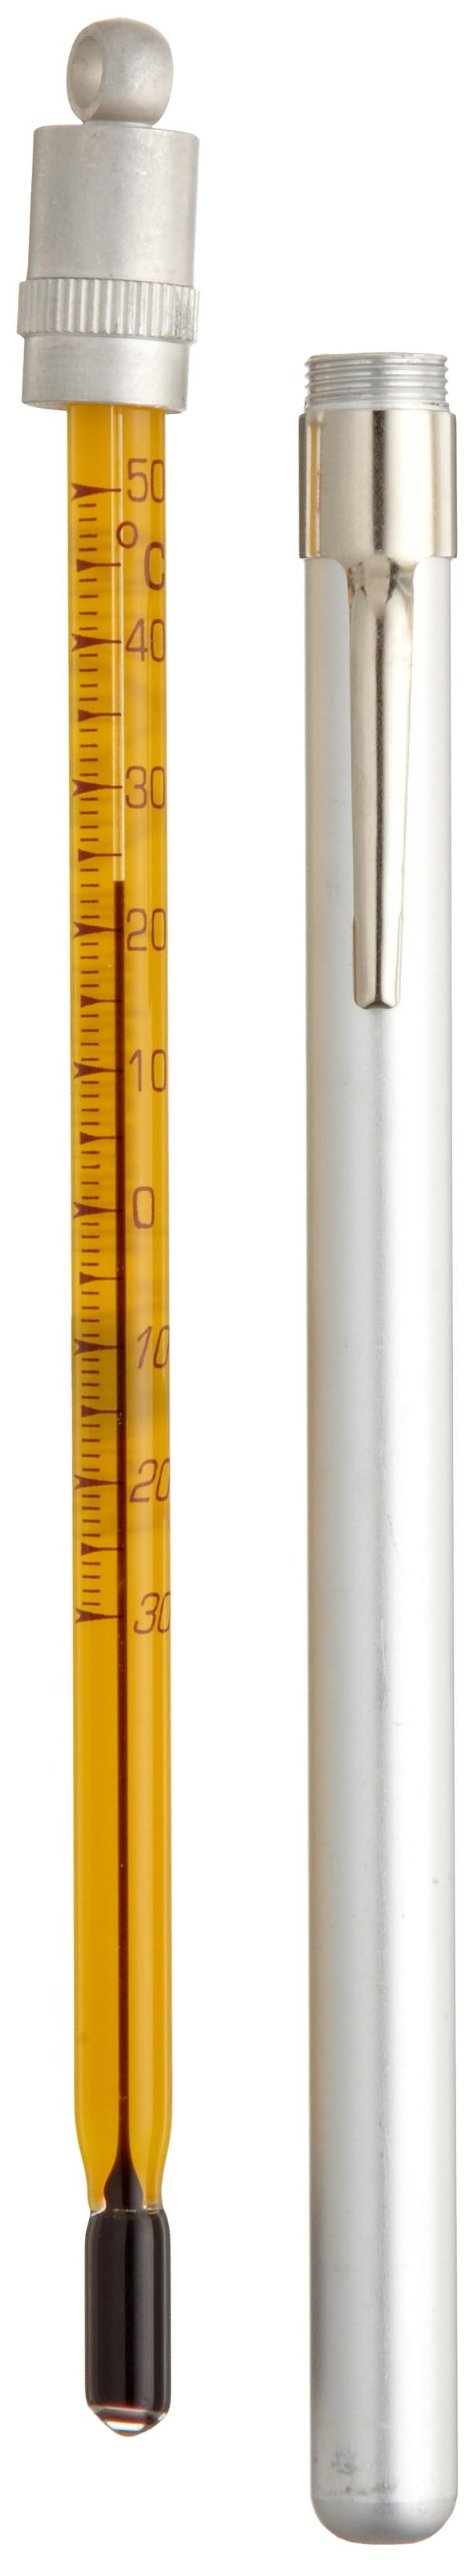 H-B Easy-Read Pocket Liquid-in-Glass Thermometer; -30 to 50C, Closed Metal Case, Environmentally Friendly (B60370-0400)